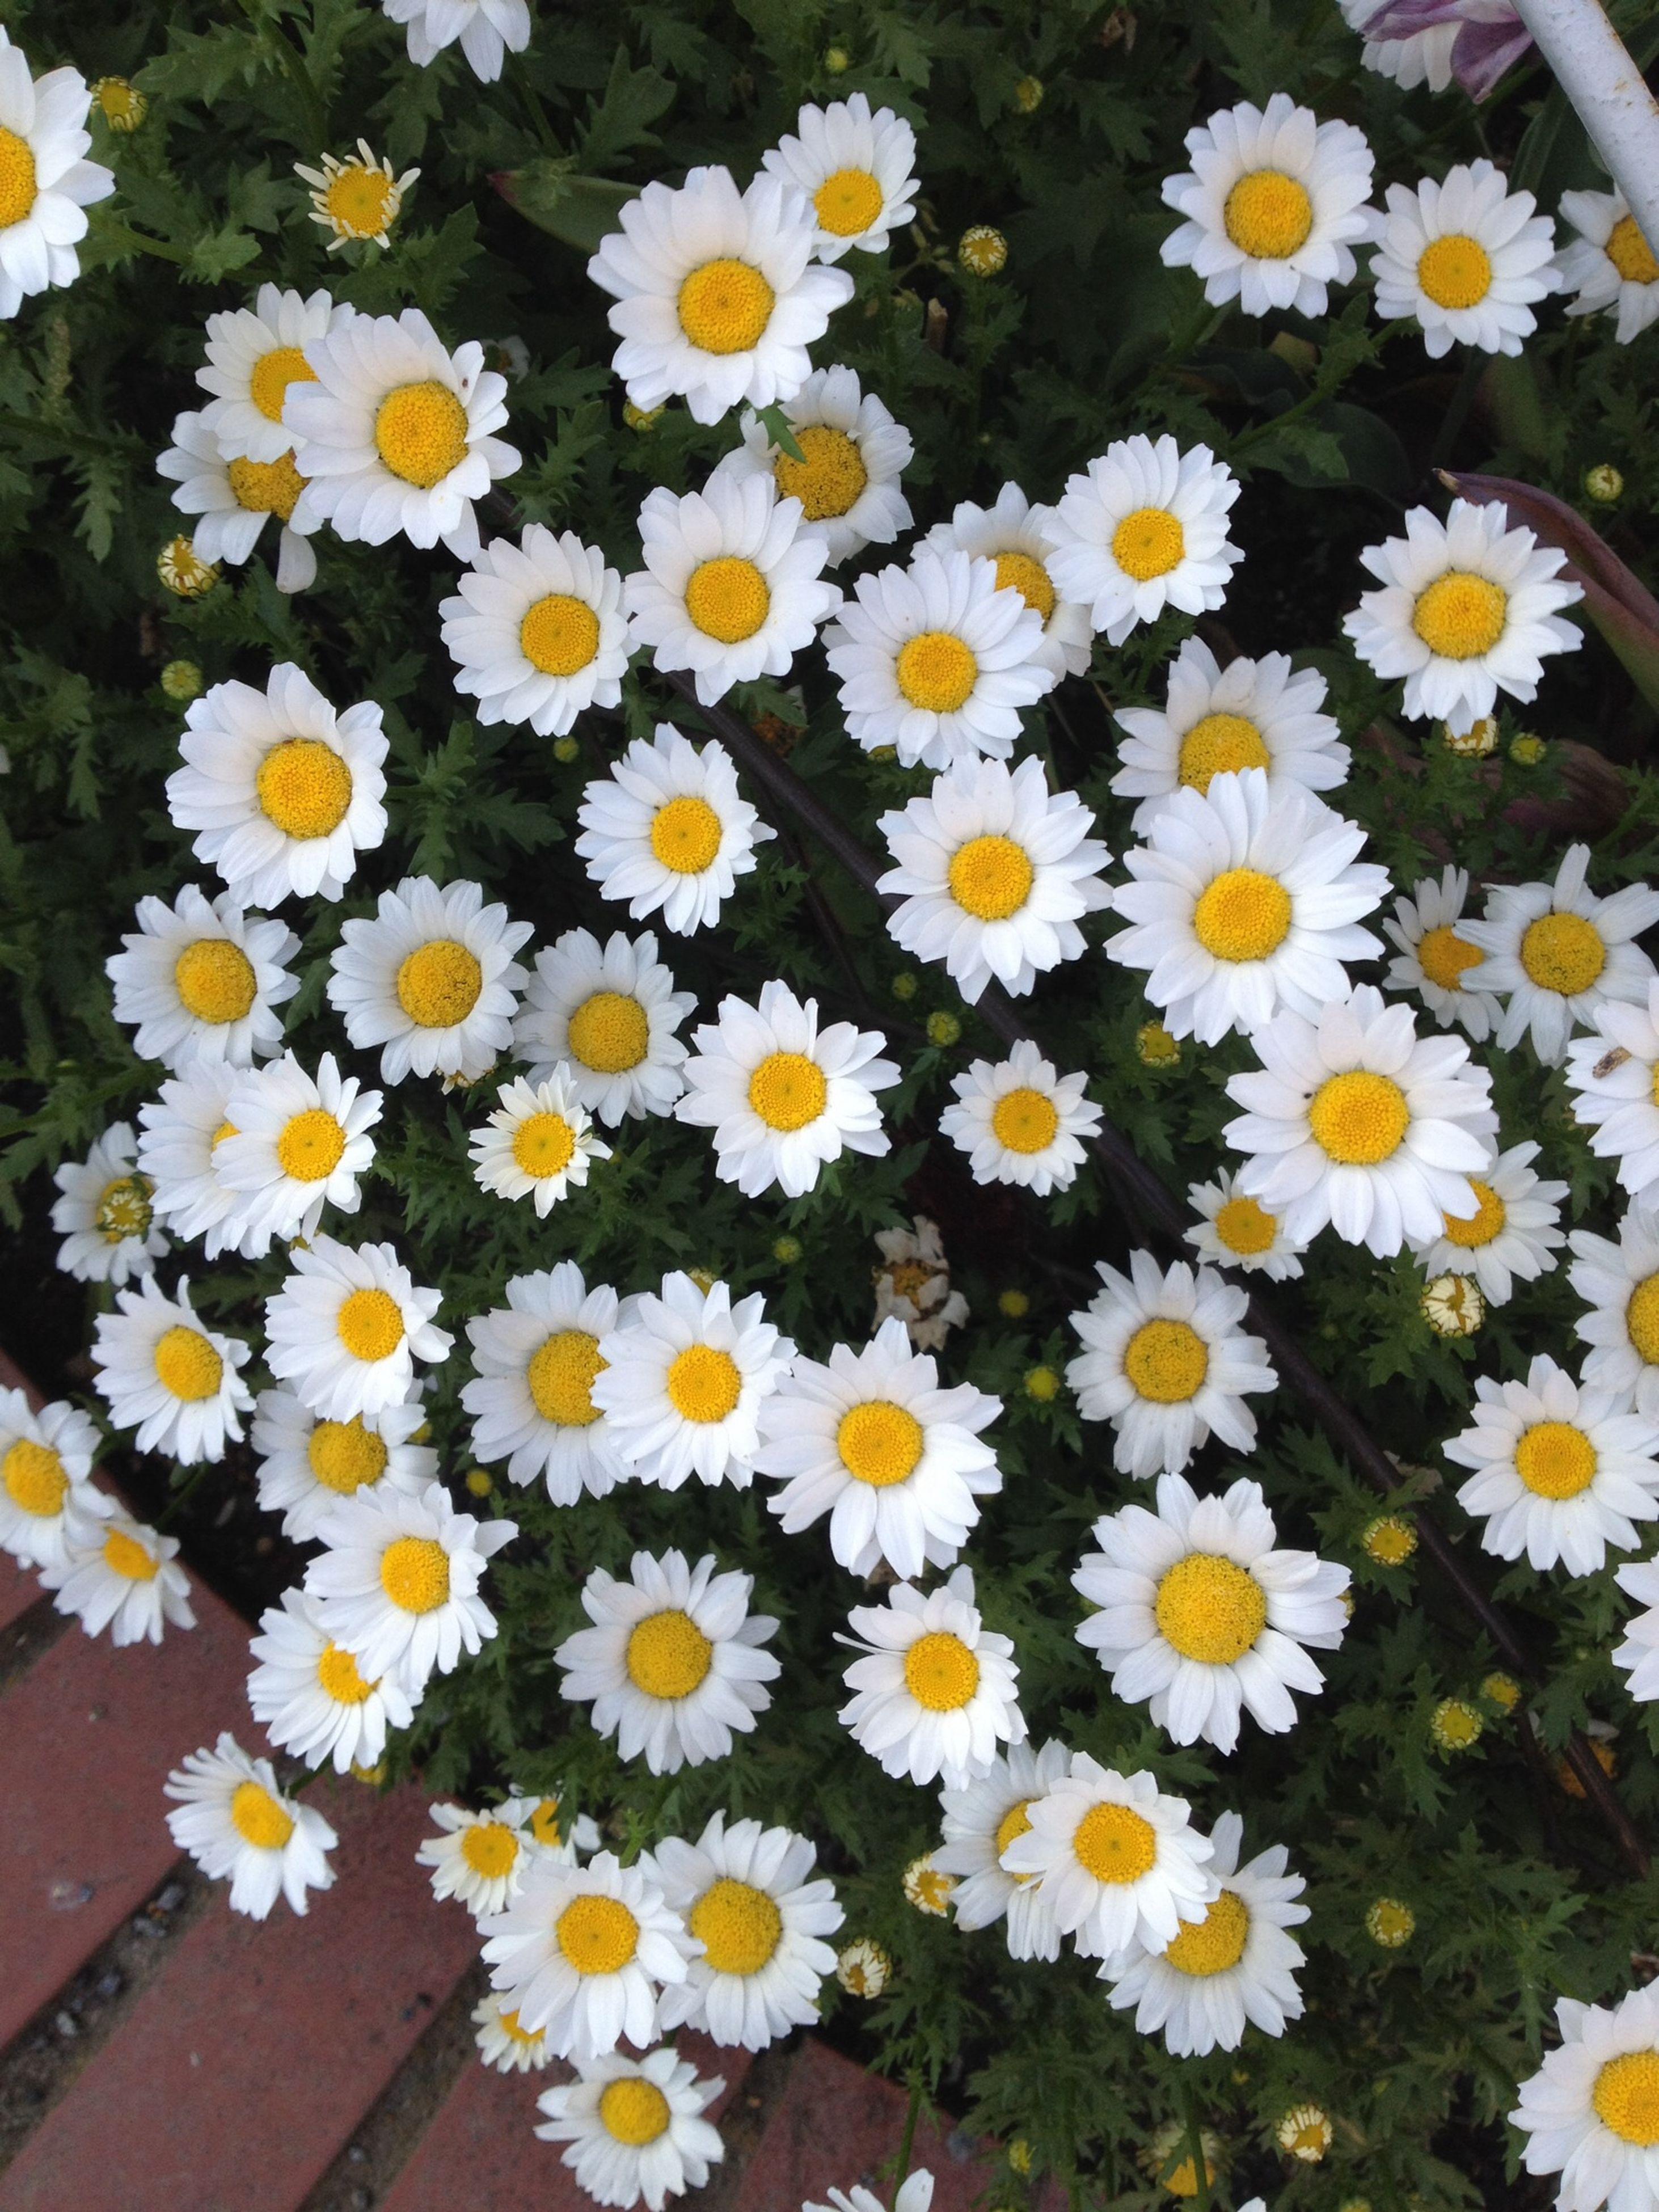 flower, daisy, freshness, fragility, petal, flower head, white color, beauty in nature, growth, yellow, high angle view, nature, blooming, pollen, abundance, plant, blossom, full frame, in bloom, white